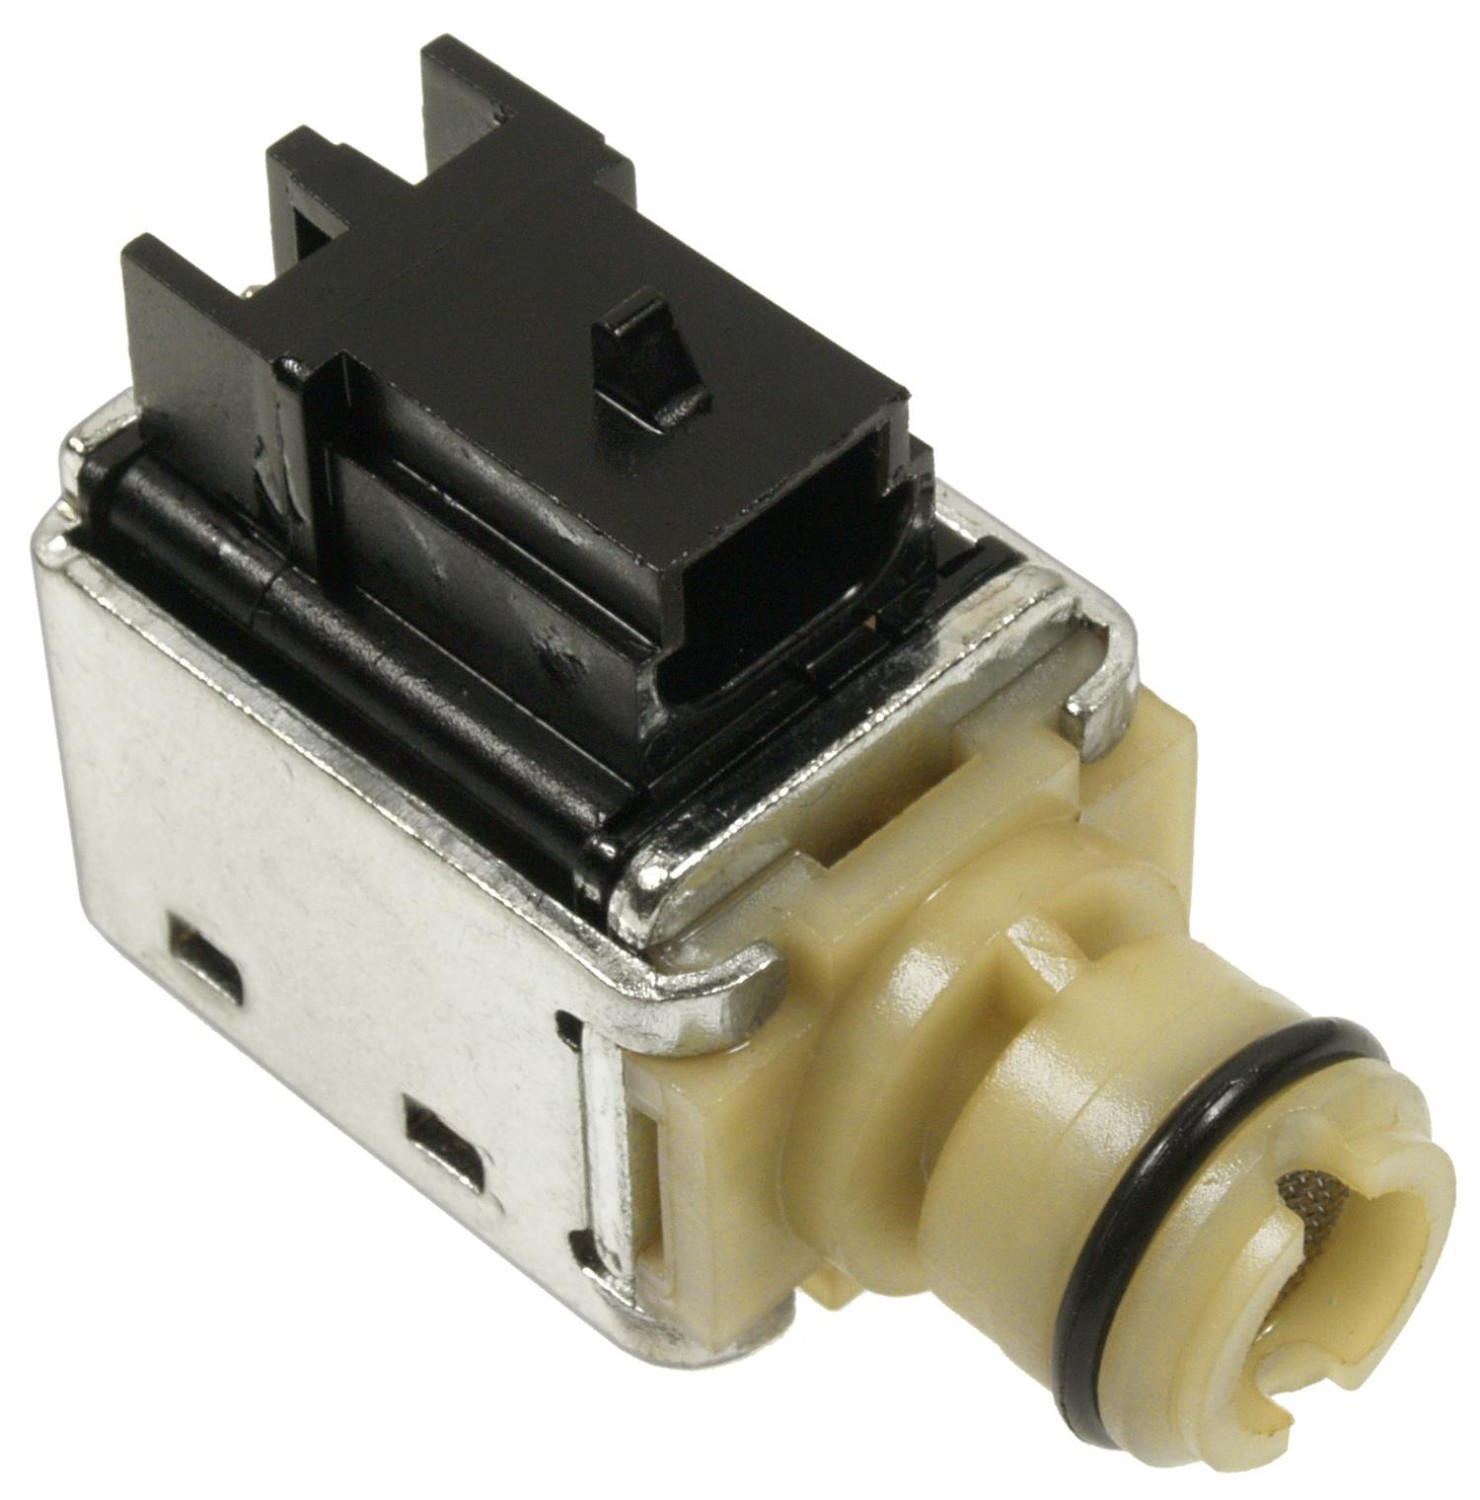 ACDELCO GOLD/PROFESSIONAL CANADA - Automatic Transmission Control Solenoid - DCH 214-1893